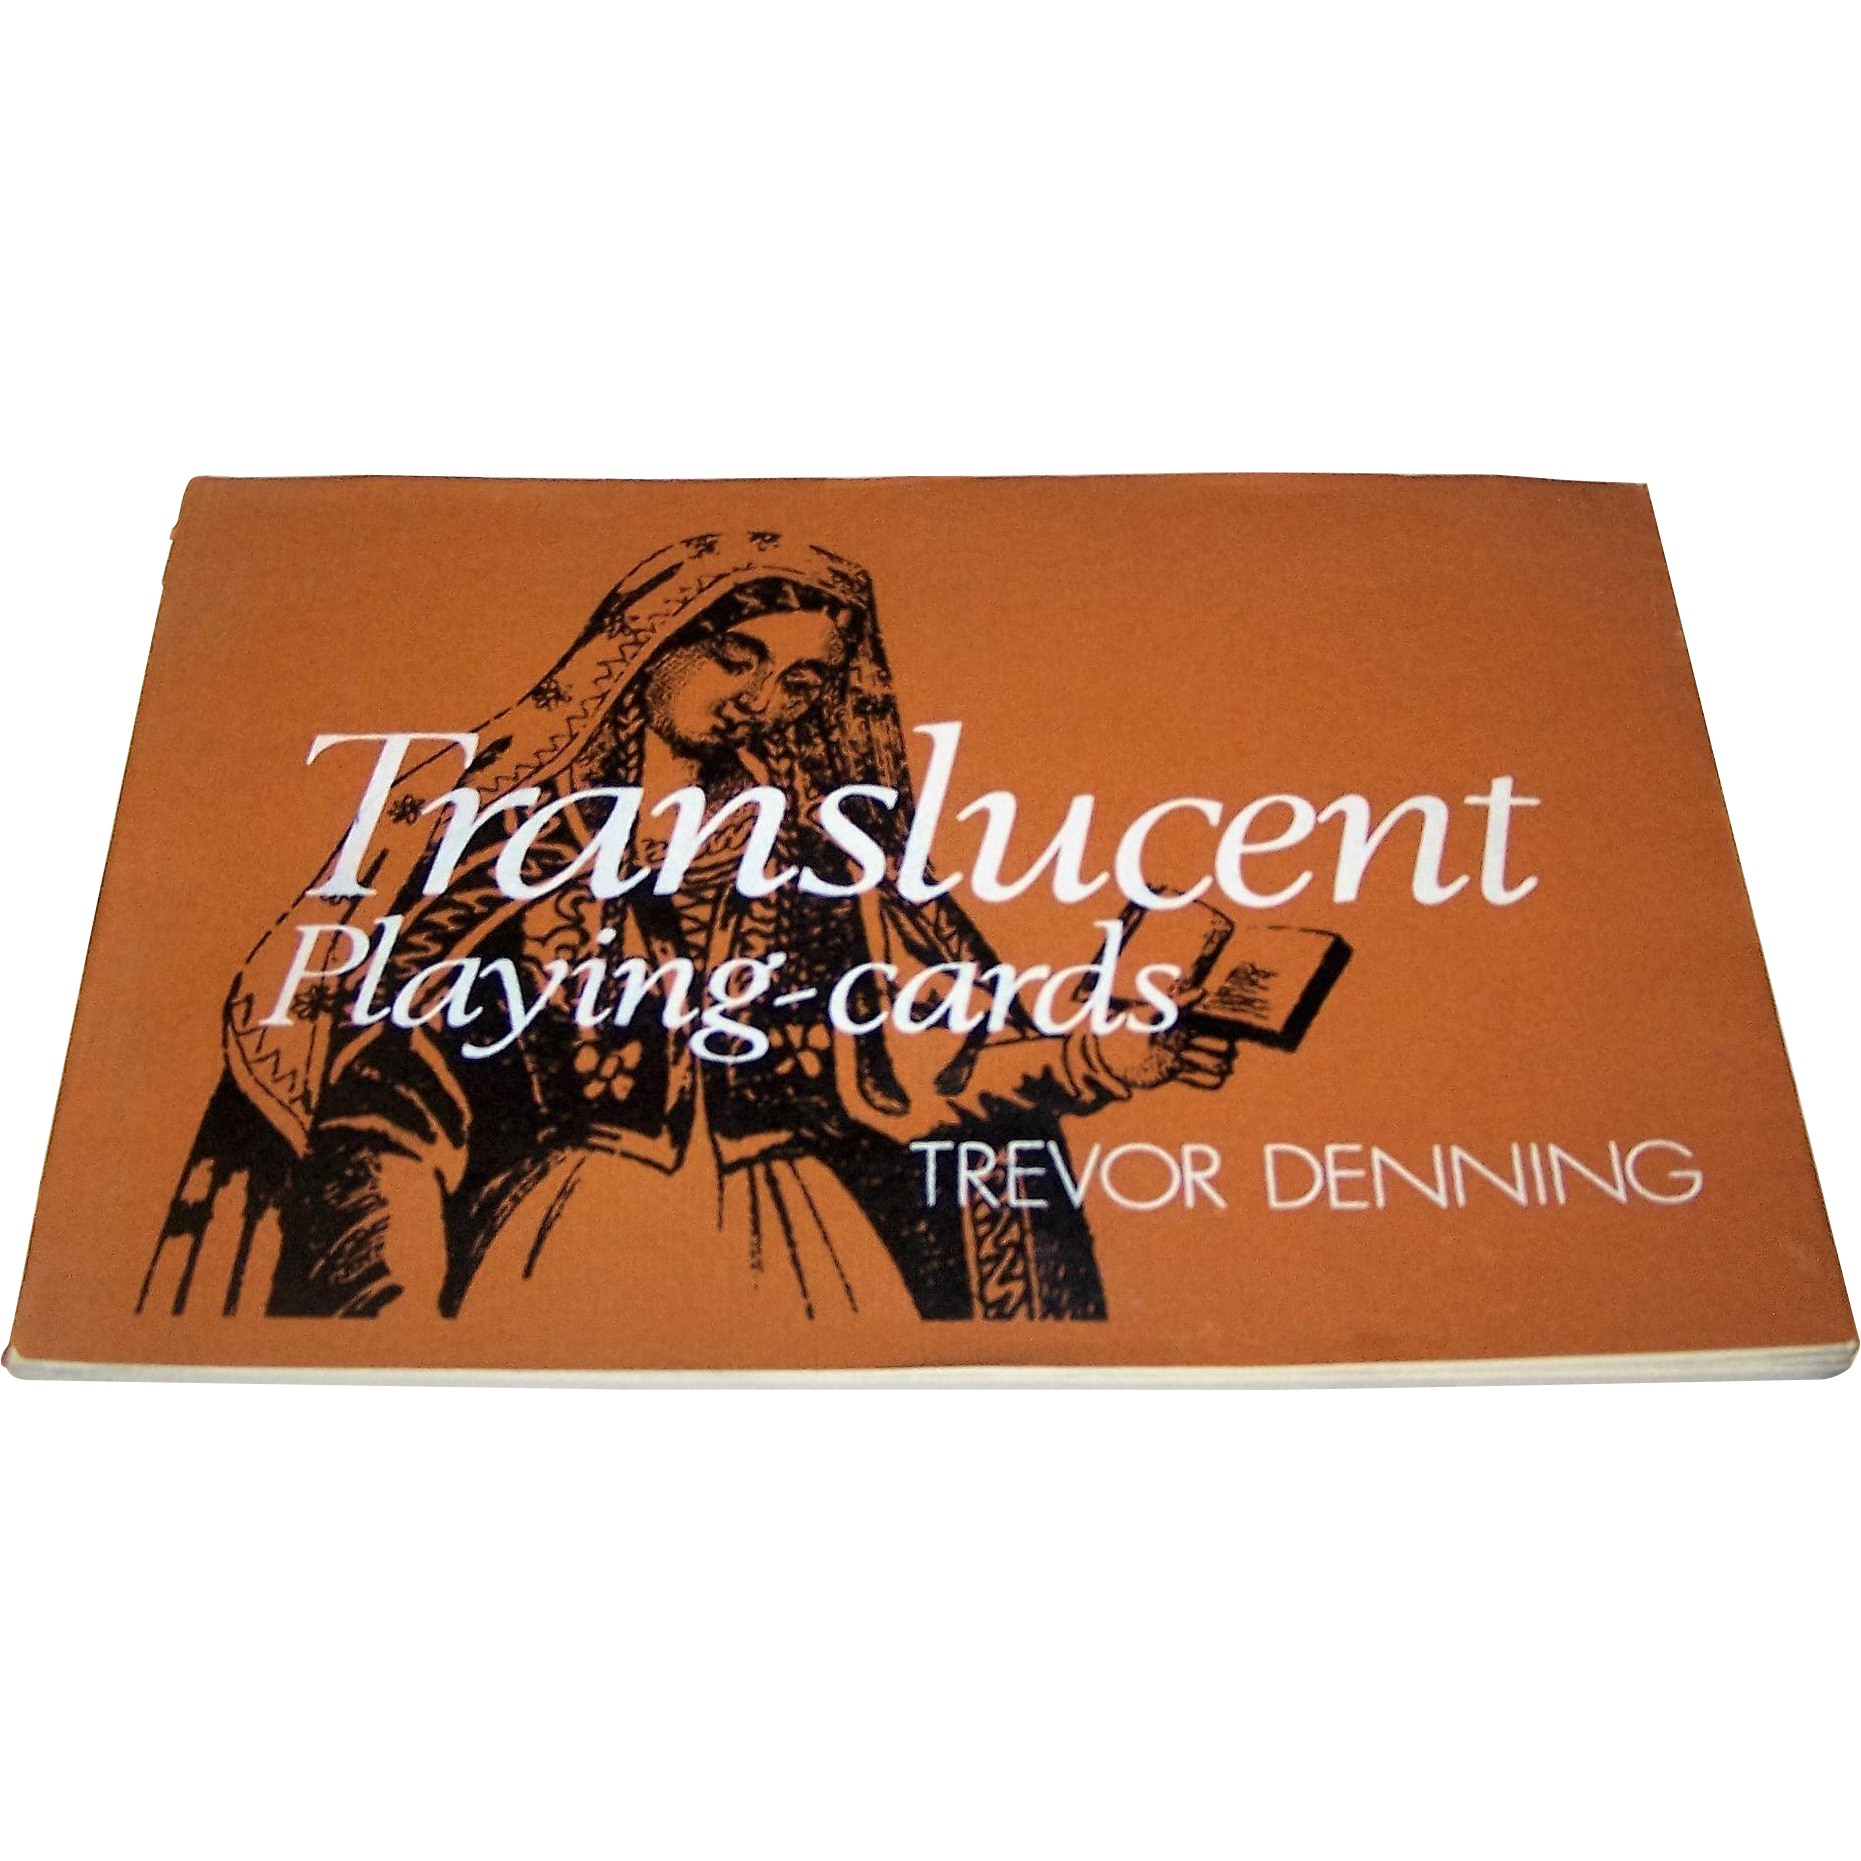 "Trevor Denning, ""Translucent Playing Cards"" Book, Ltd. Ed. (190/300), Signed by the Author, c.1976"